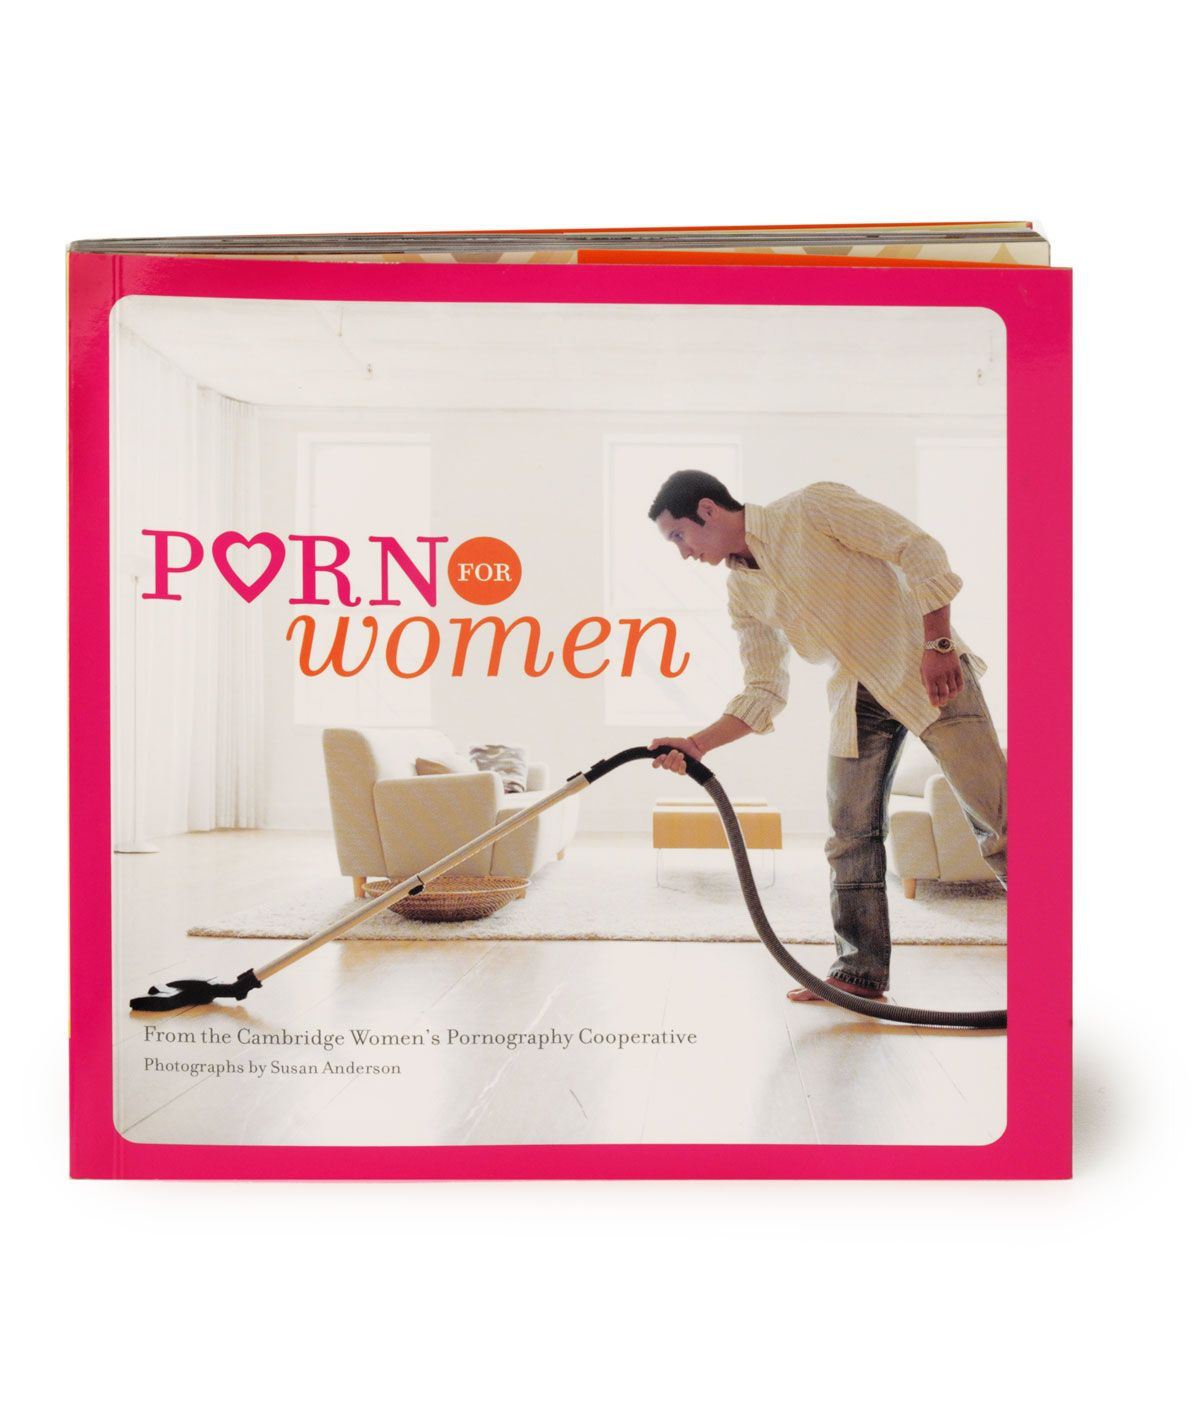 Funny Porn For Women - Porn for Women Gag Book-Weird-Funny-Gags-Gifts-Stuff